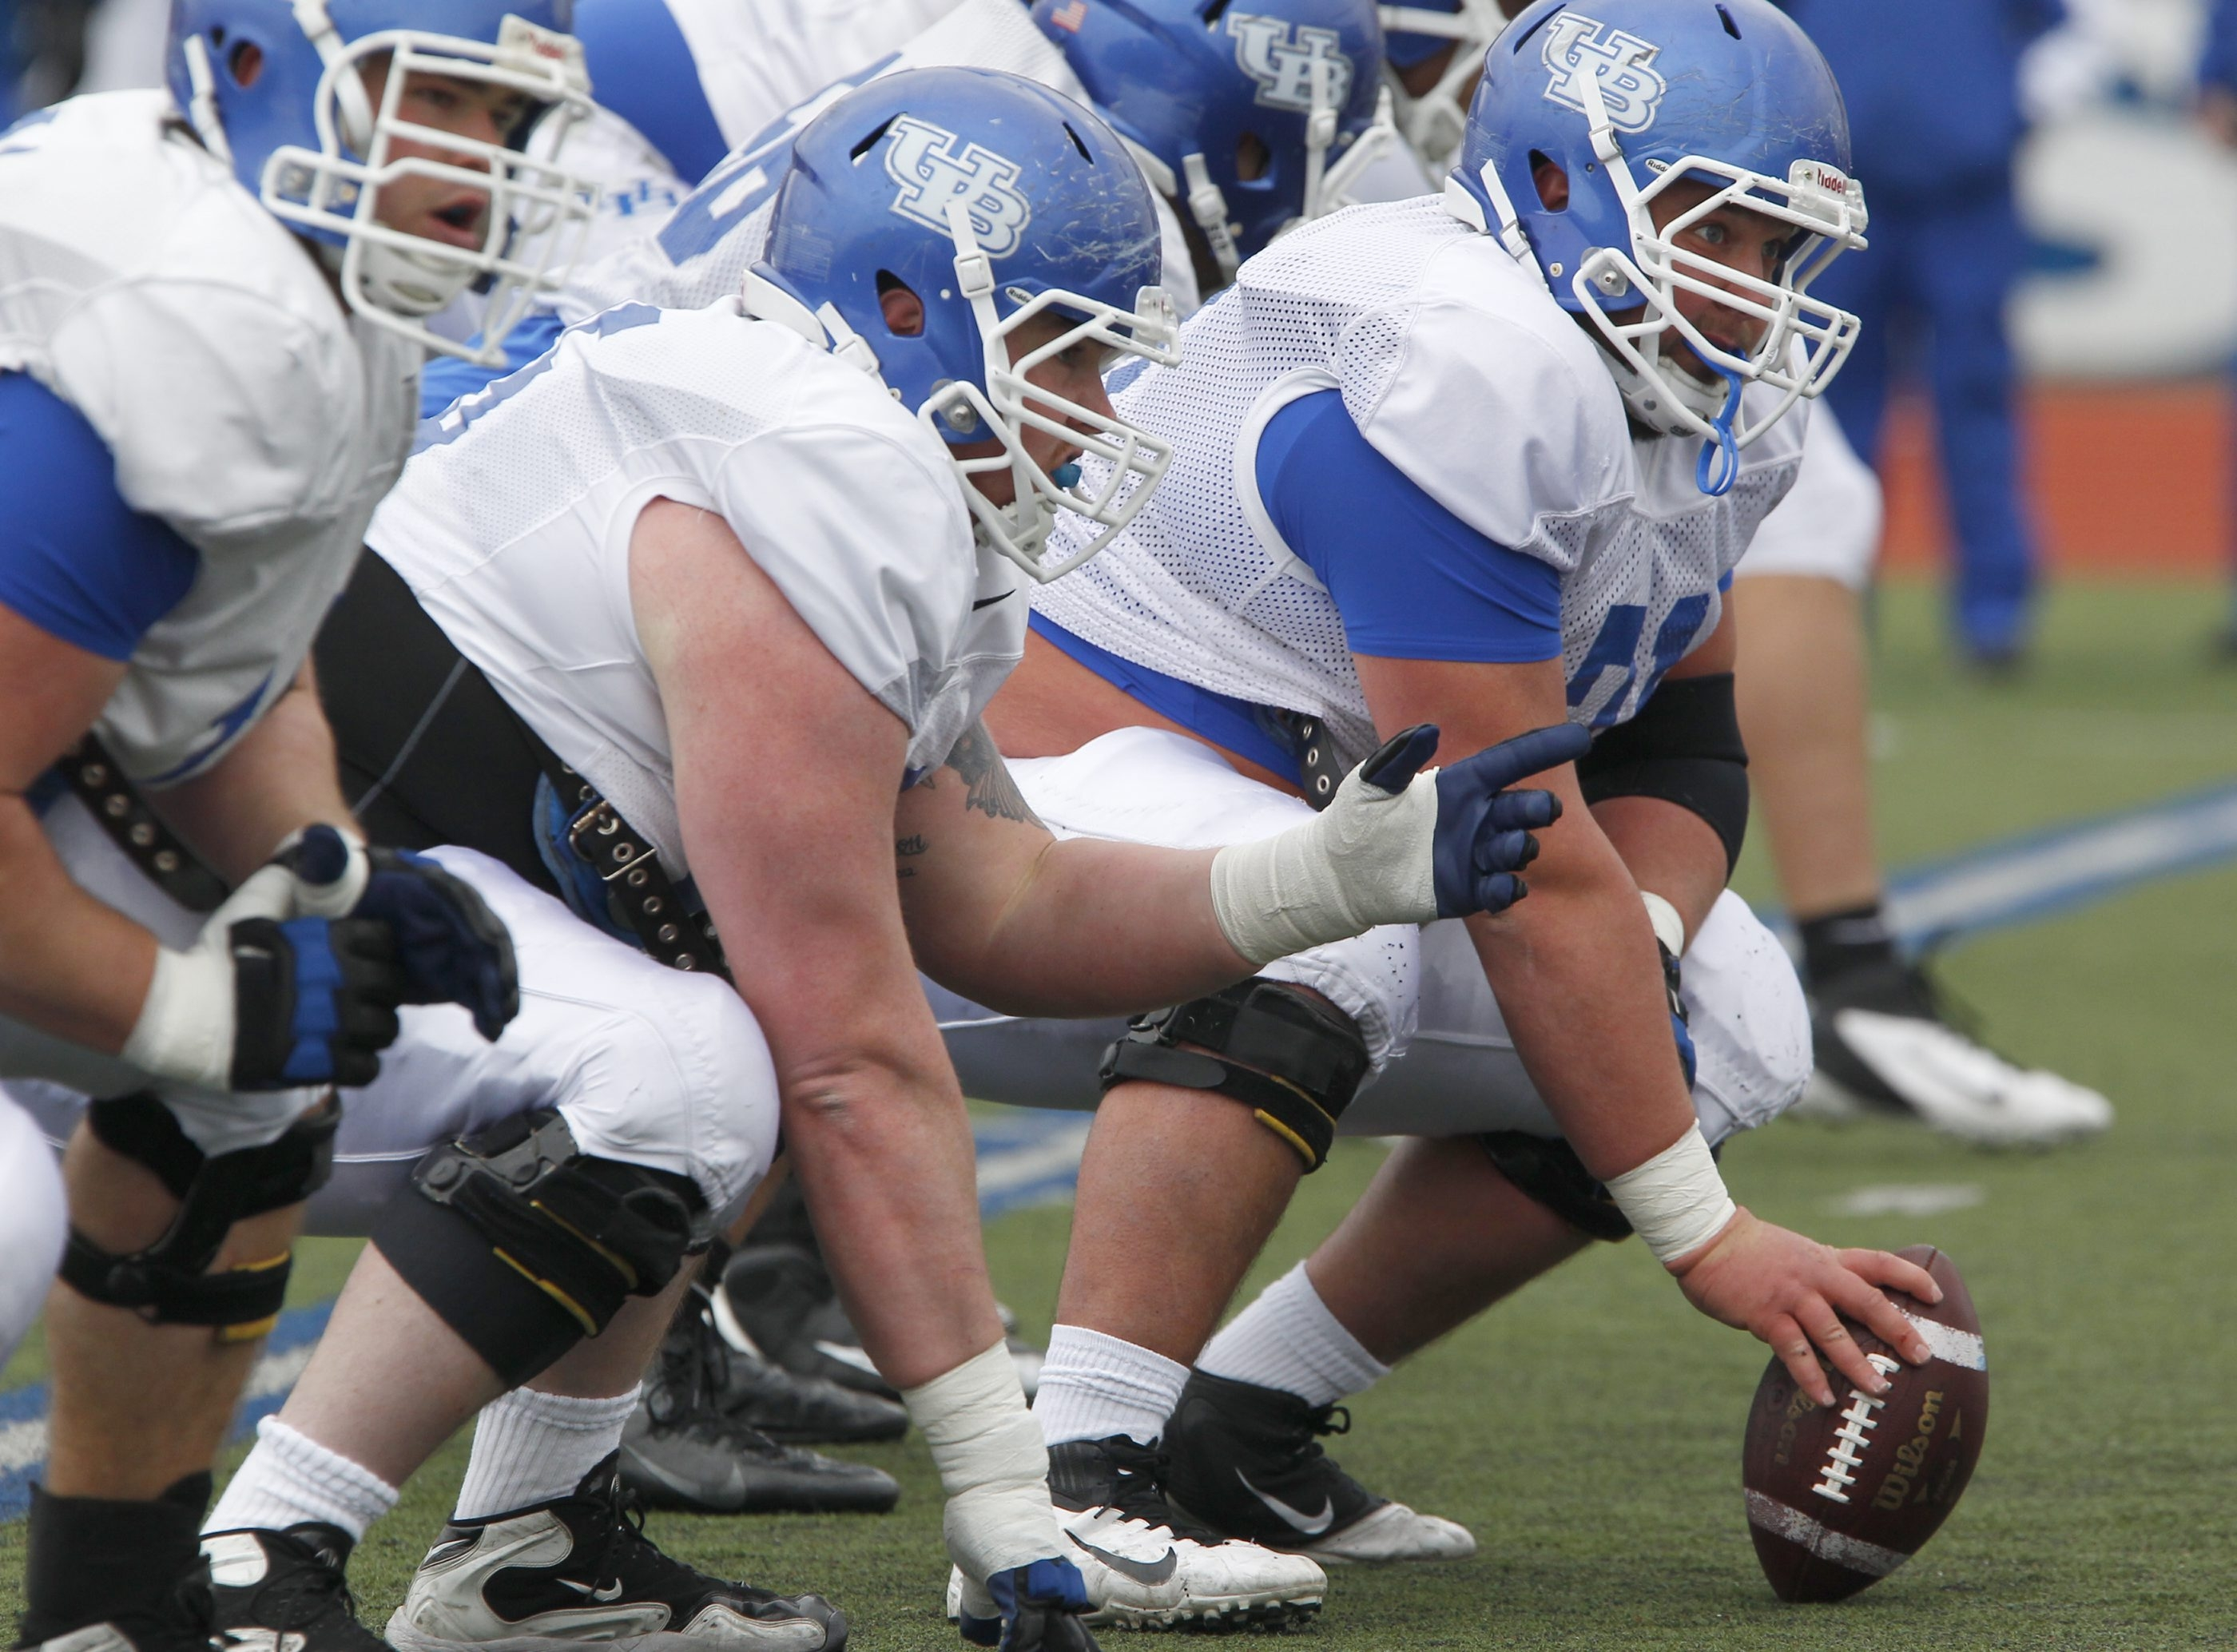 Football and music, from hip hop to old school, are the two main passions of UB center Trevor Sales.